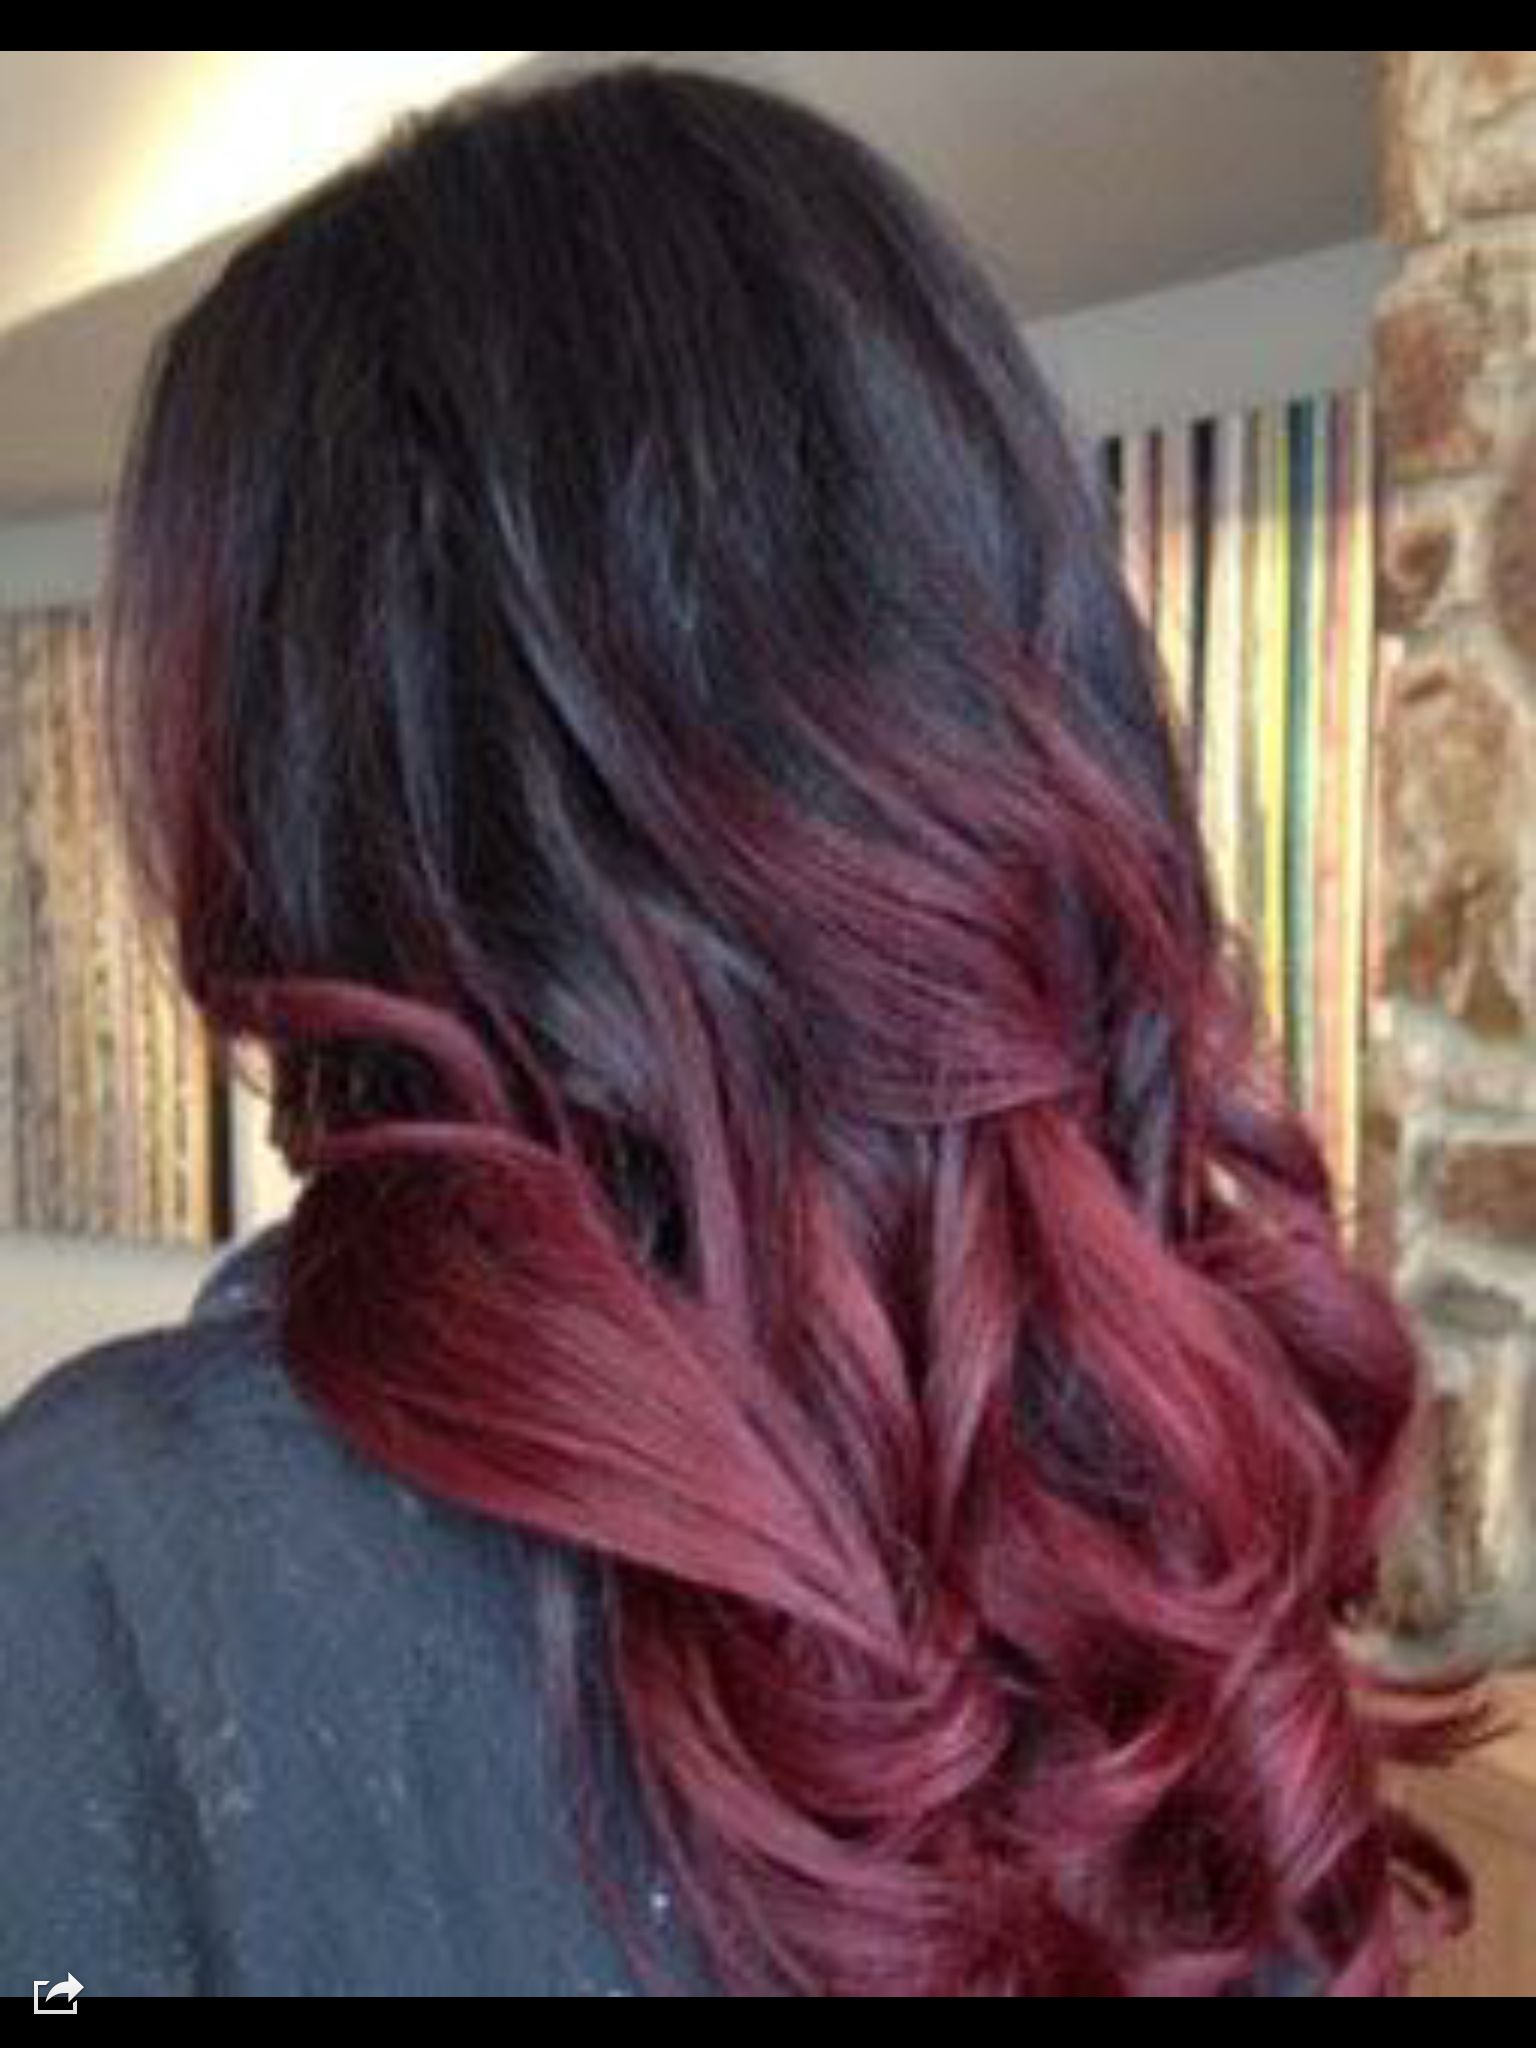 Ombr Magenta Hair Style Ideas Pinterest Hair Coloring Hair Style And Awesome Hair